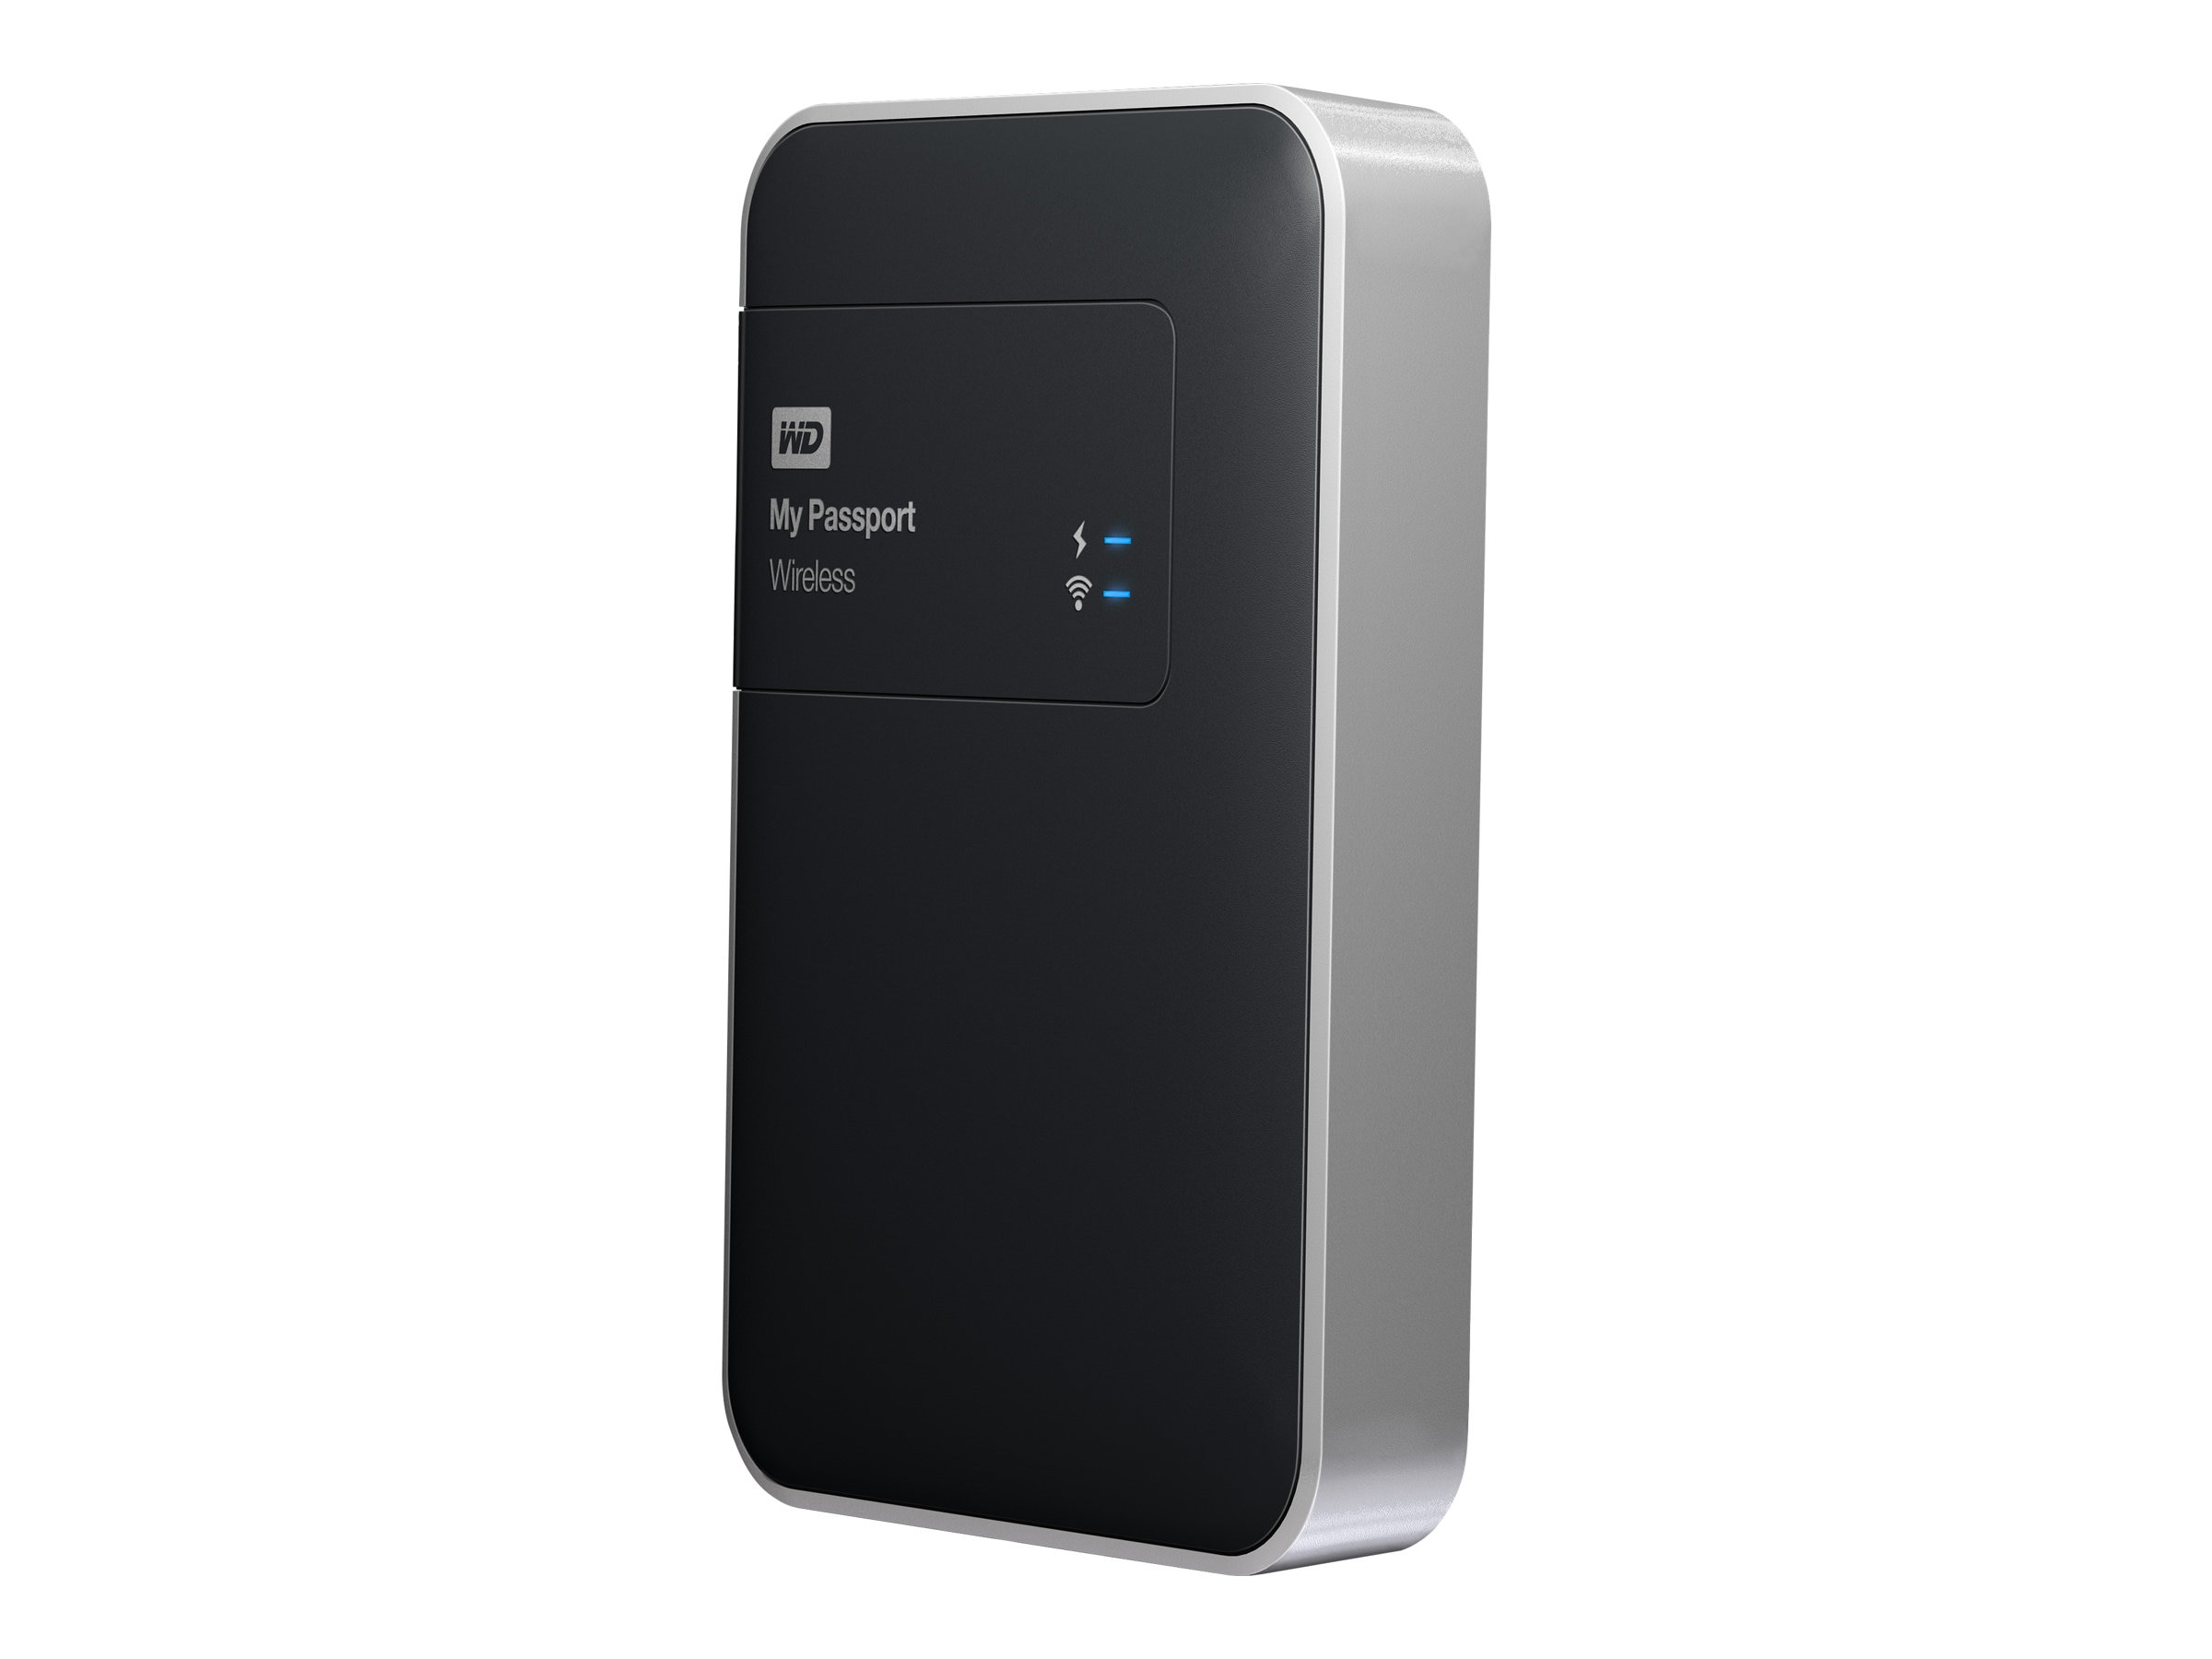 WD 1TB My Passport Wireless Storage - Black, WDBK8Z0010BBK-NESN, 17741420, Network Attached Storage